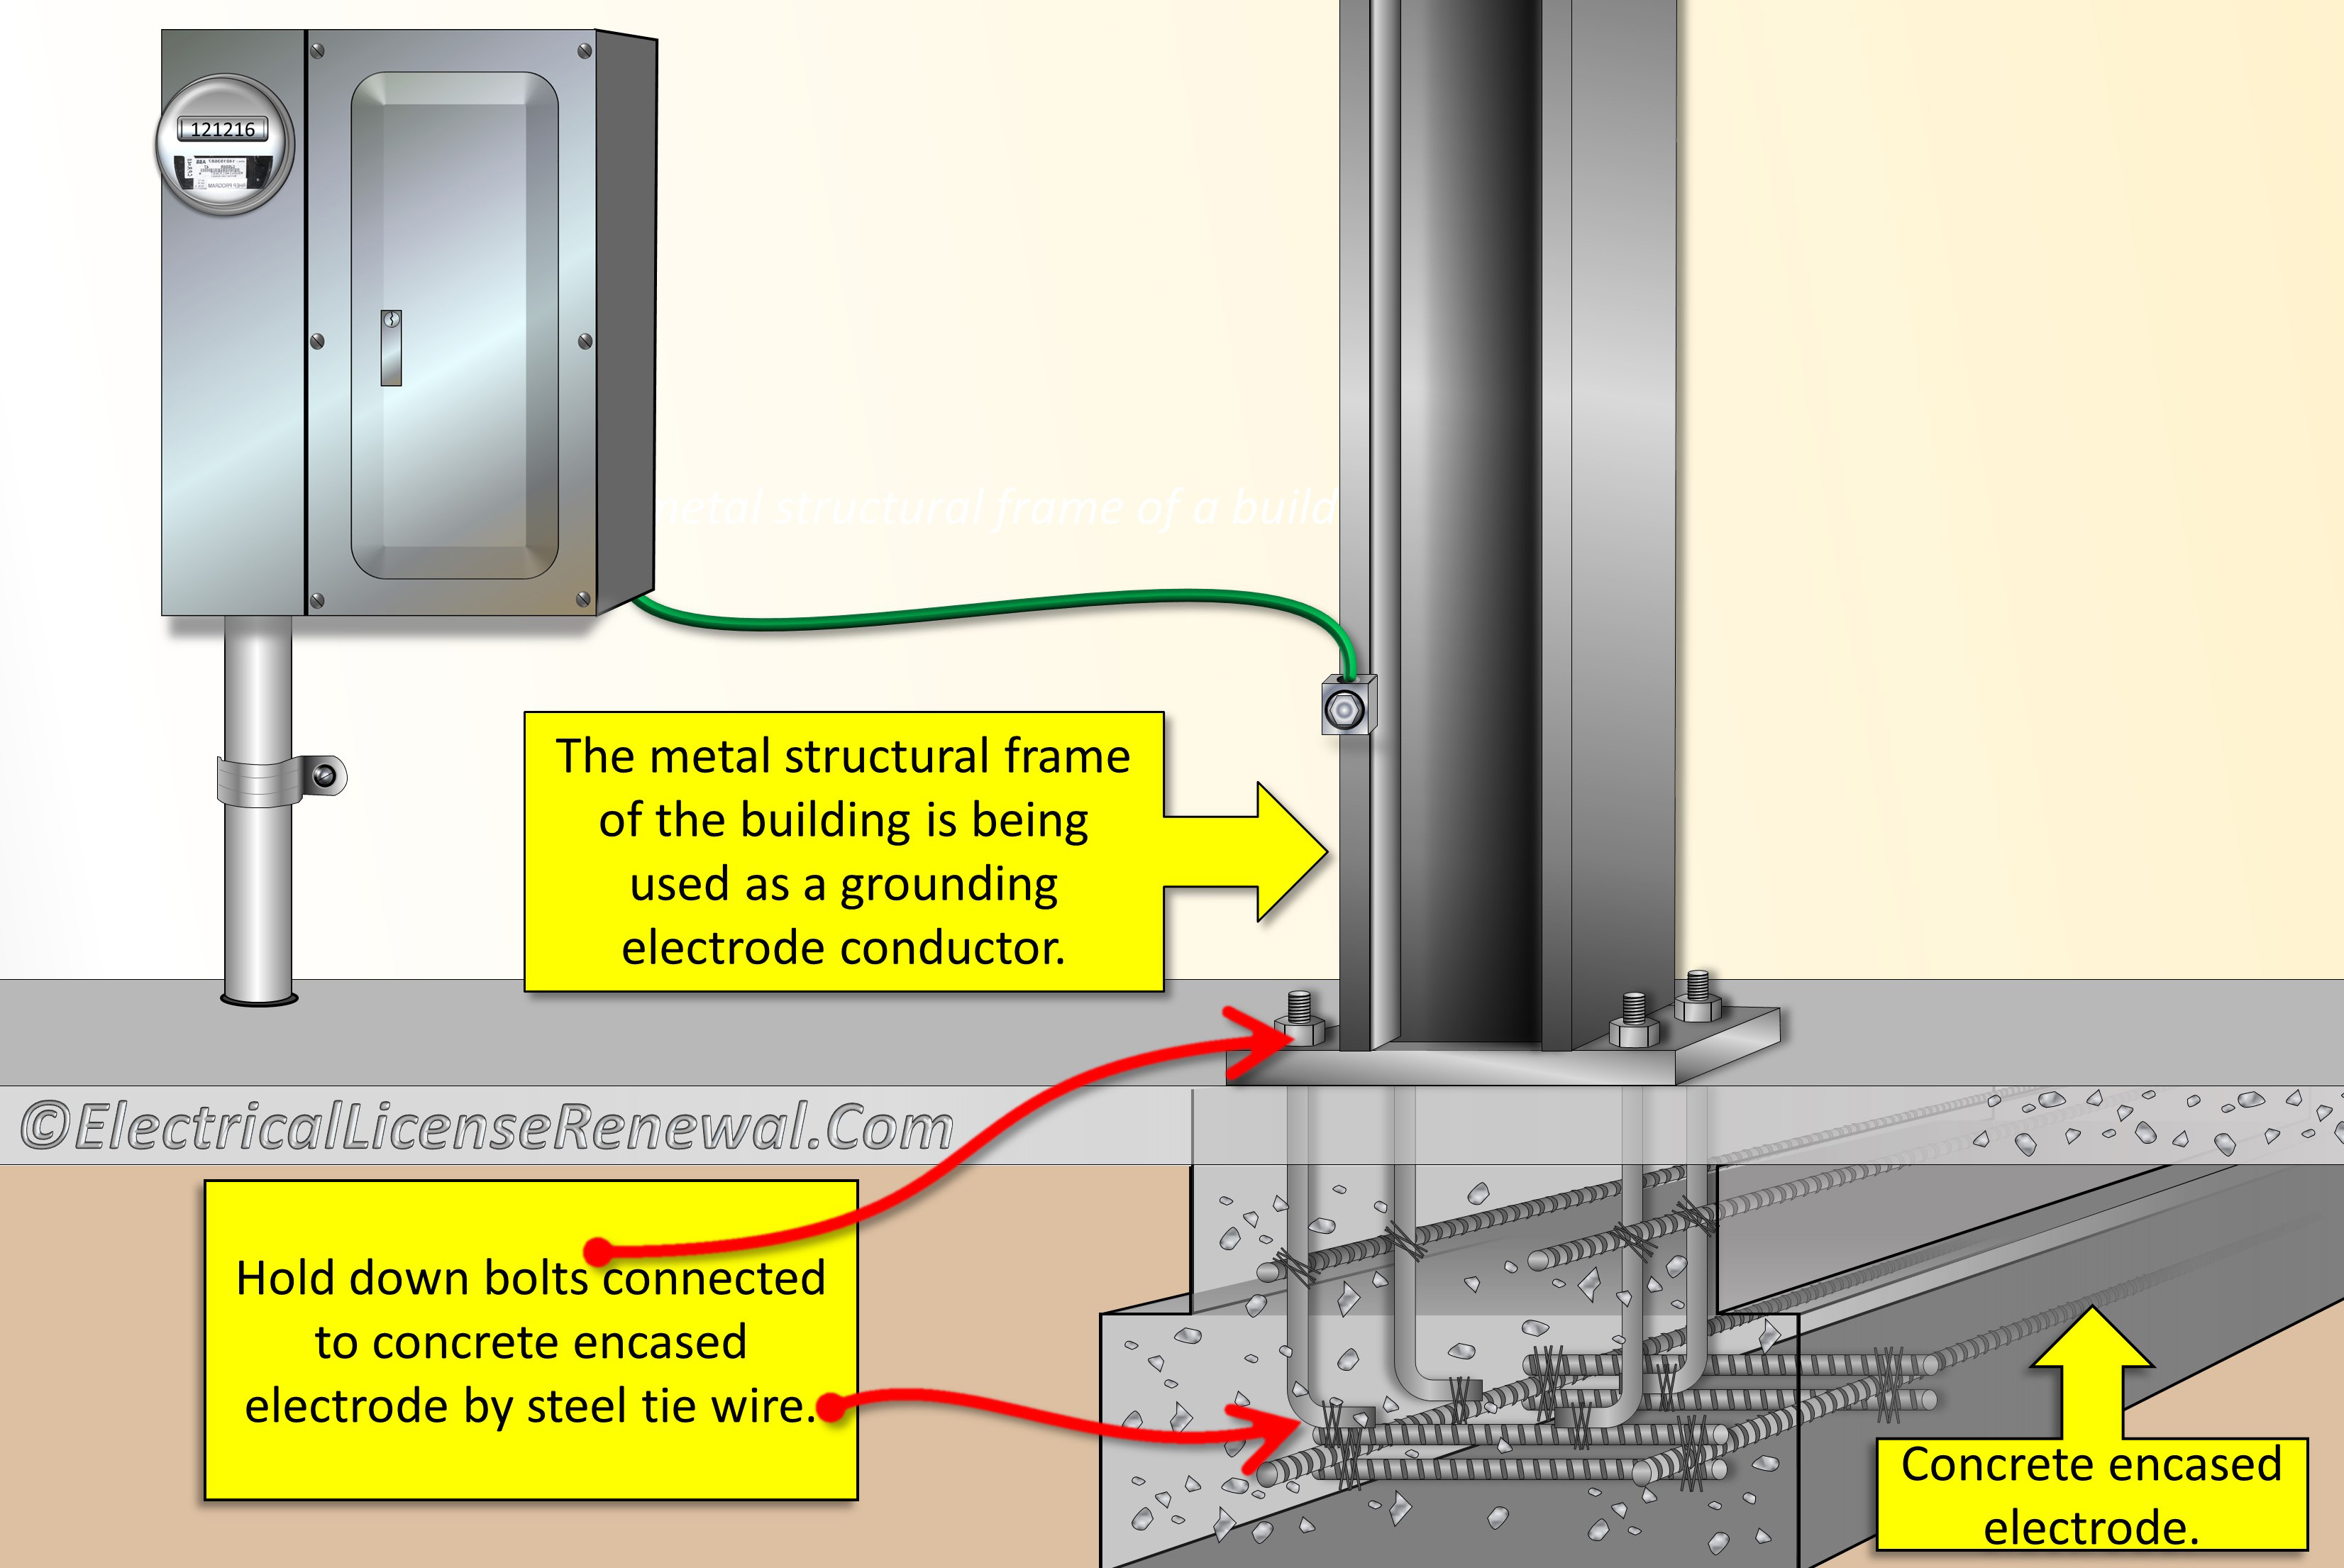 250 68(c)(2) grounding electrode conductor connections metal Basic House Wiring Circuit Diagram 250 68(c)(2) grounding electrode conductor connections metal structural frame of a building